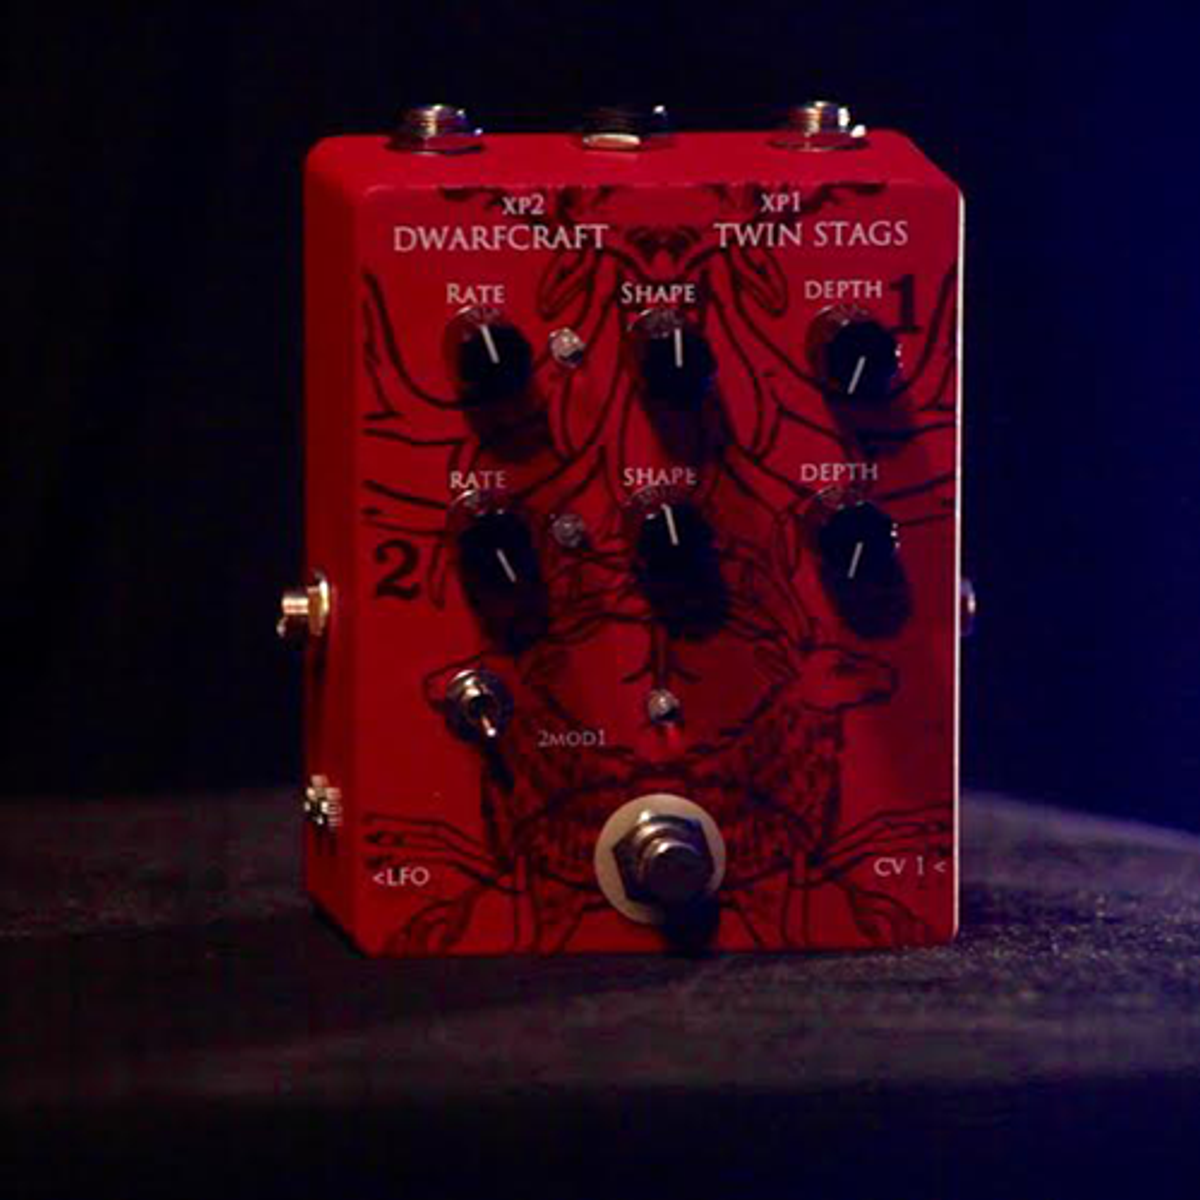 Dwarfcraft Devices Releases the Twin Stags